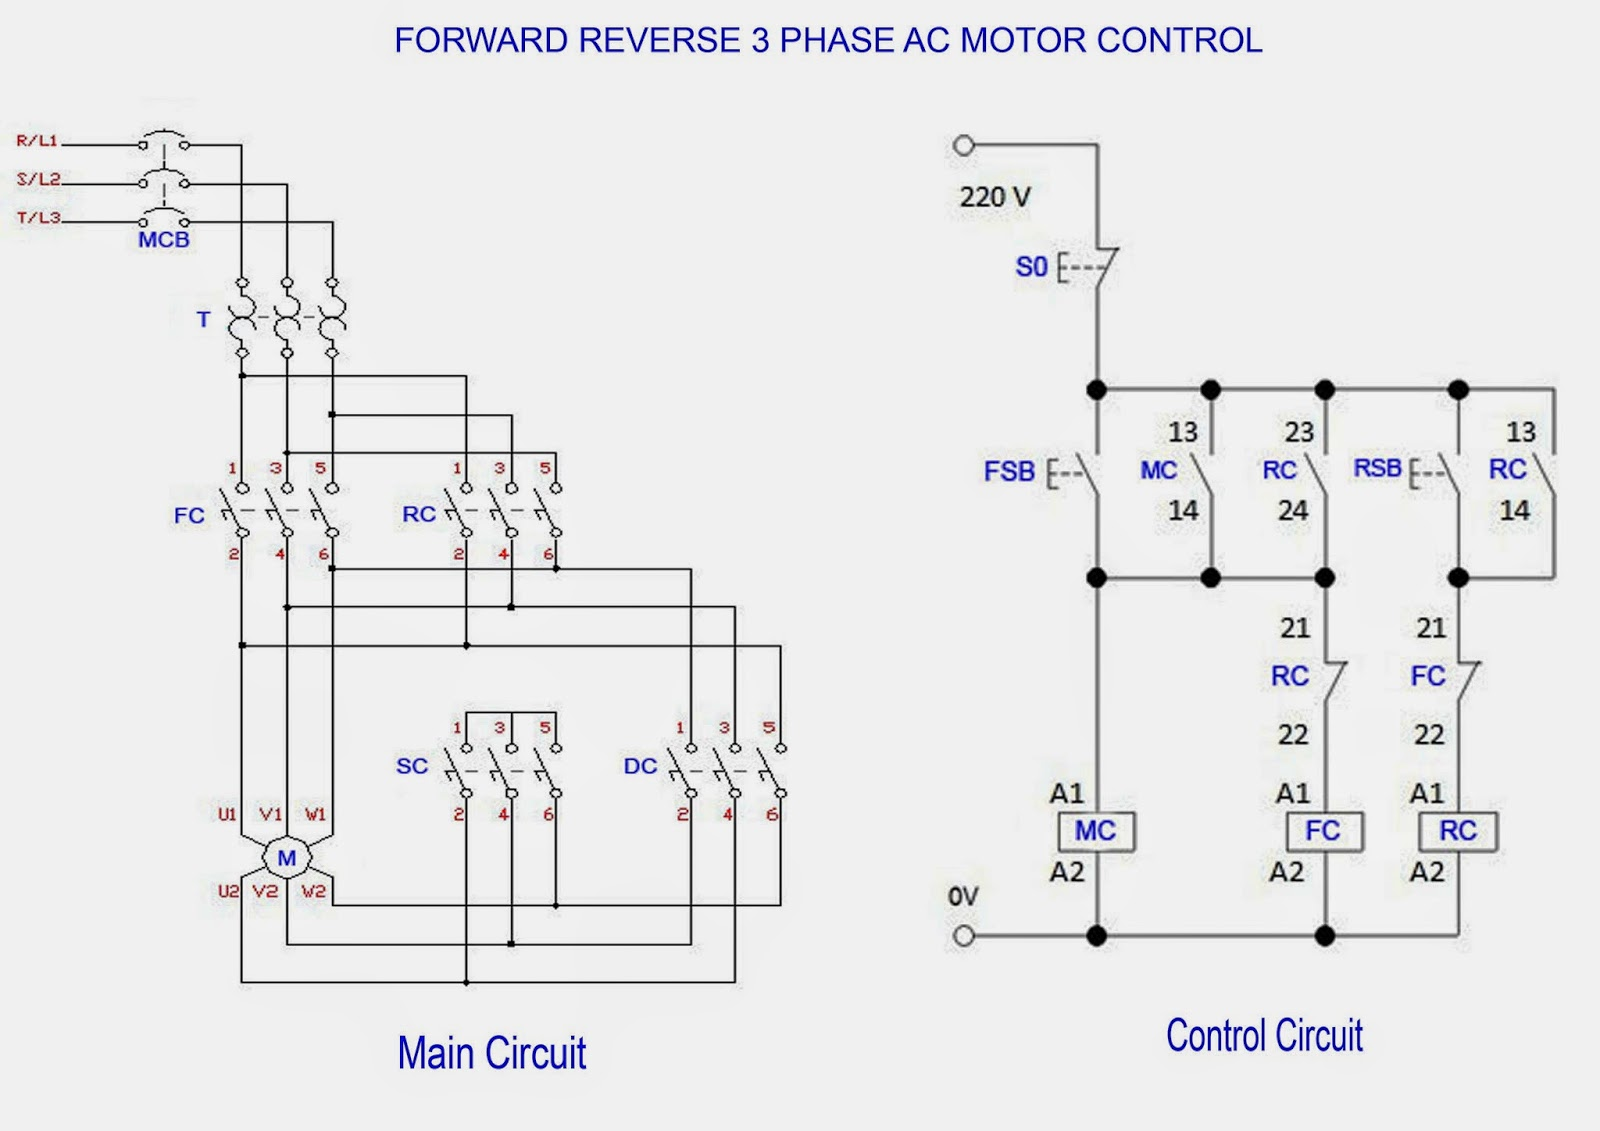 wiring diagram for forward reverse contactor